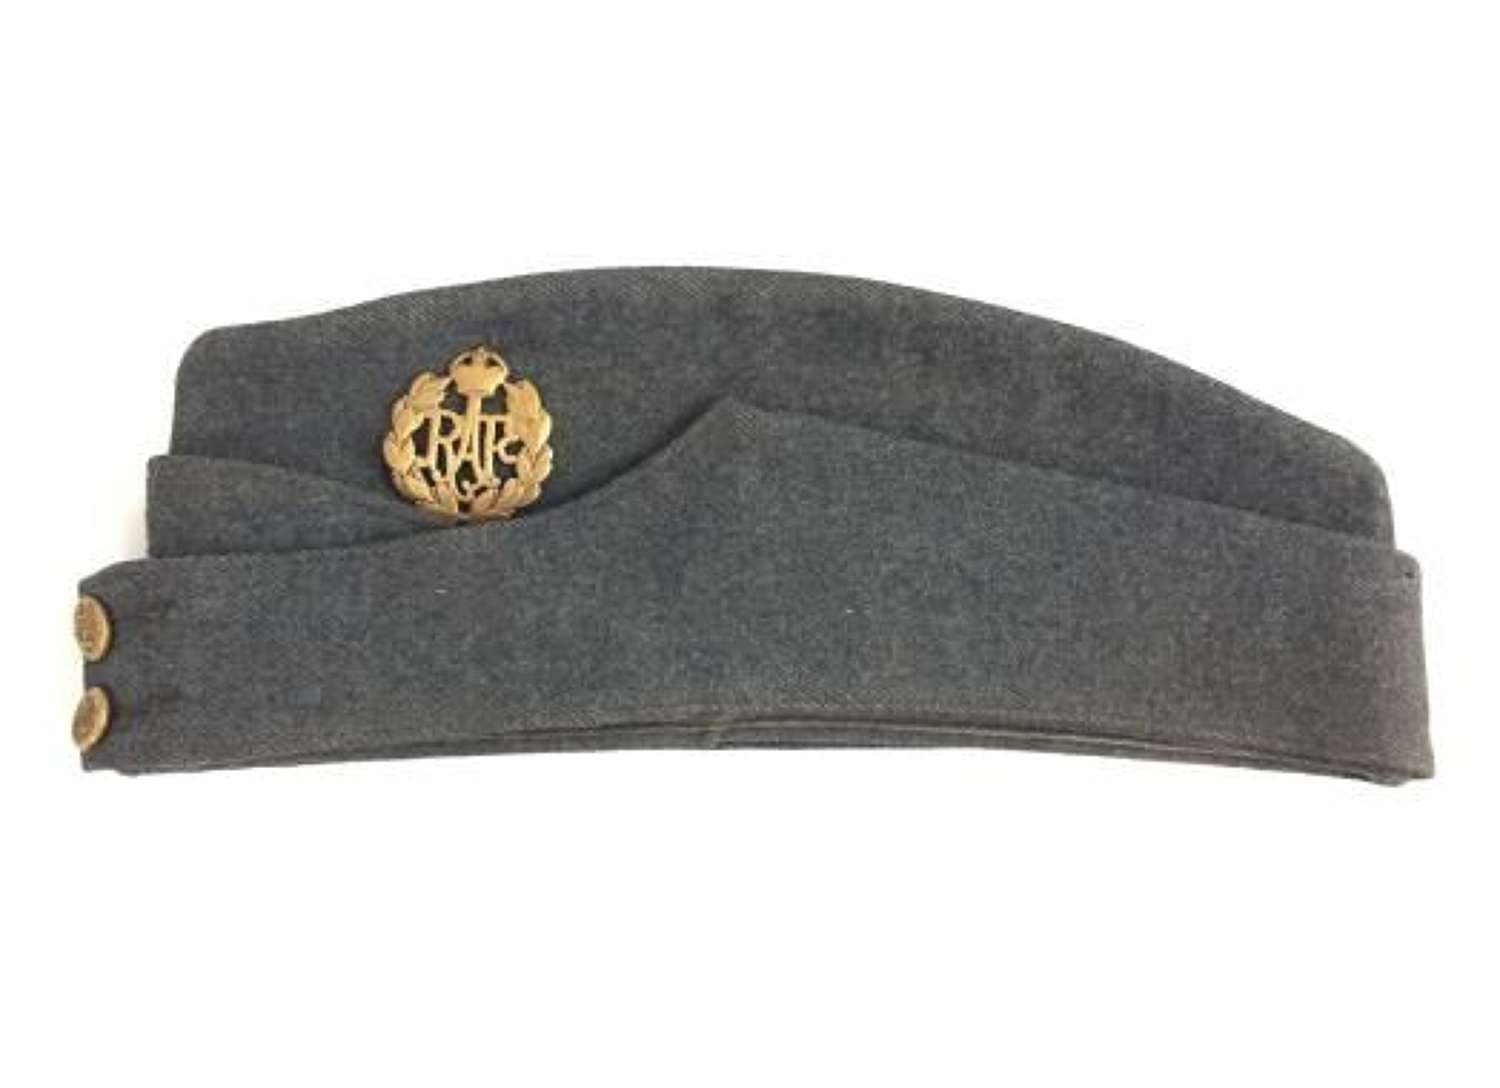 Original 1947 Dated RAF OA Forage Cap - Size 7 3/8